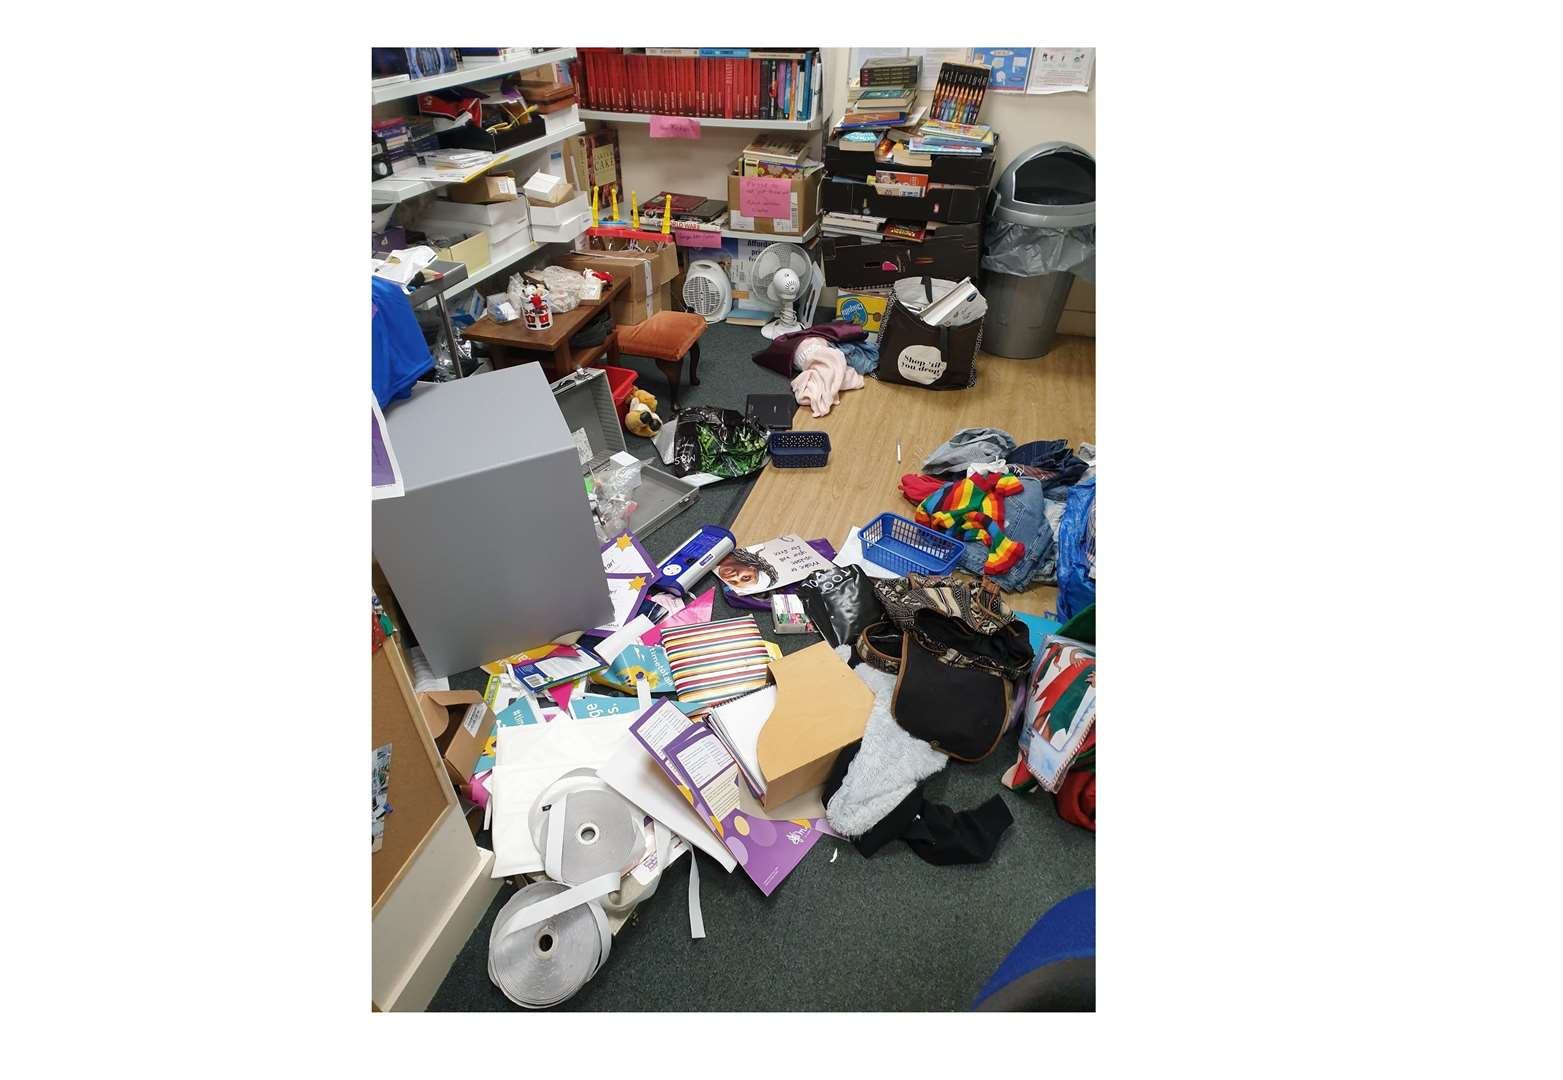 A stockroom was ransacked and items stolen during a break-in at Mind charity shop, on Cornhill, Bury St Edmunds. Picture: @BuryMind (28833996)